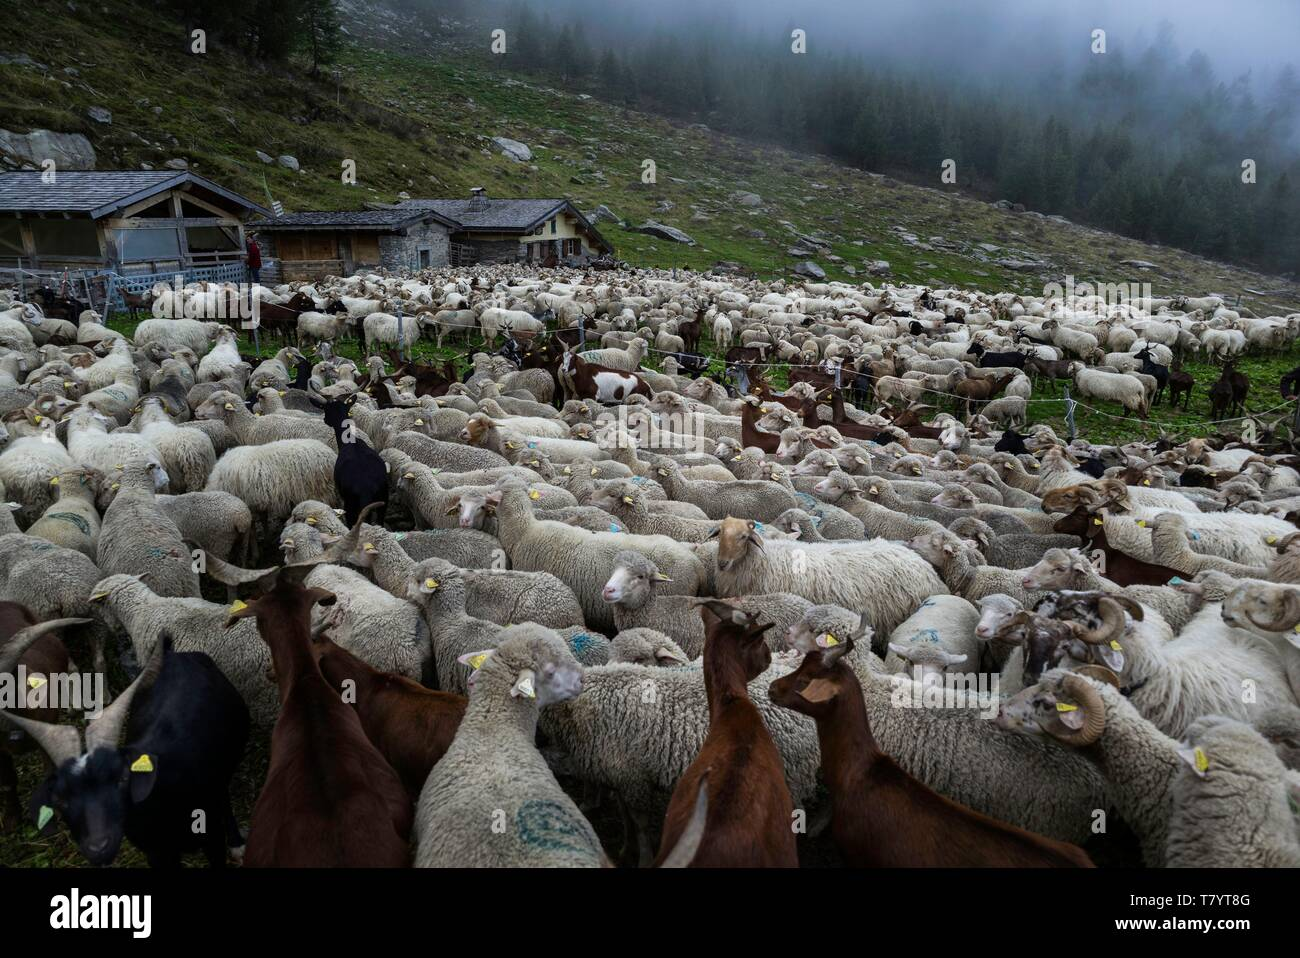 France, Haute Savoie, Chamonix Mont Blanc, village of Argentiere, mountain range of Mont Blanc, Jean-Luc Pitrat, sheperd, mountain pasture of the Pendant, sorting of the herd - Stock Image